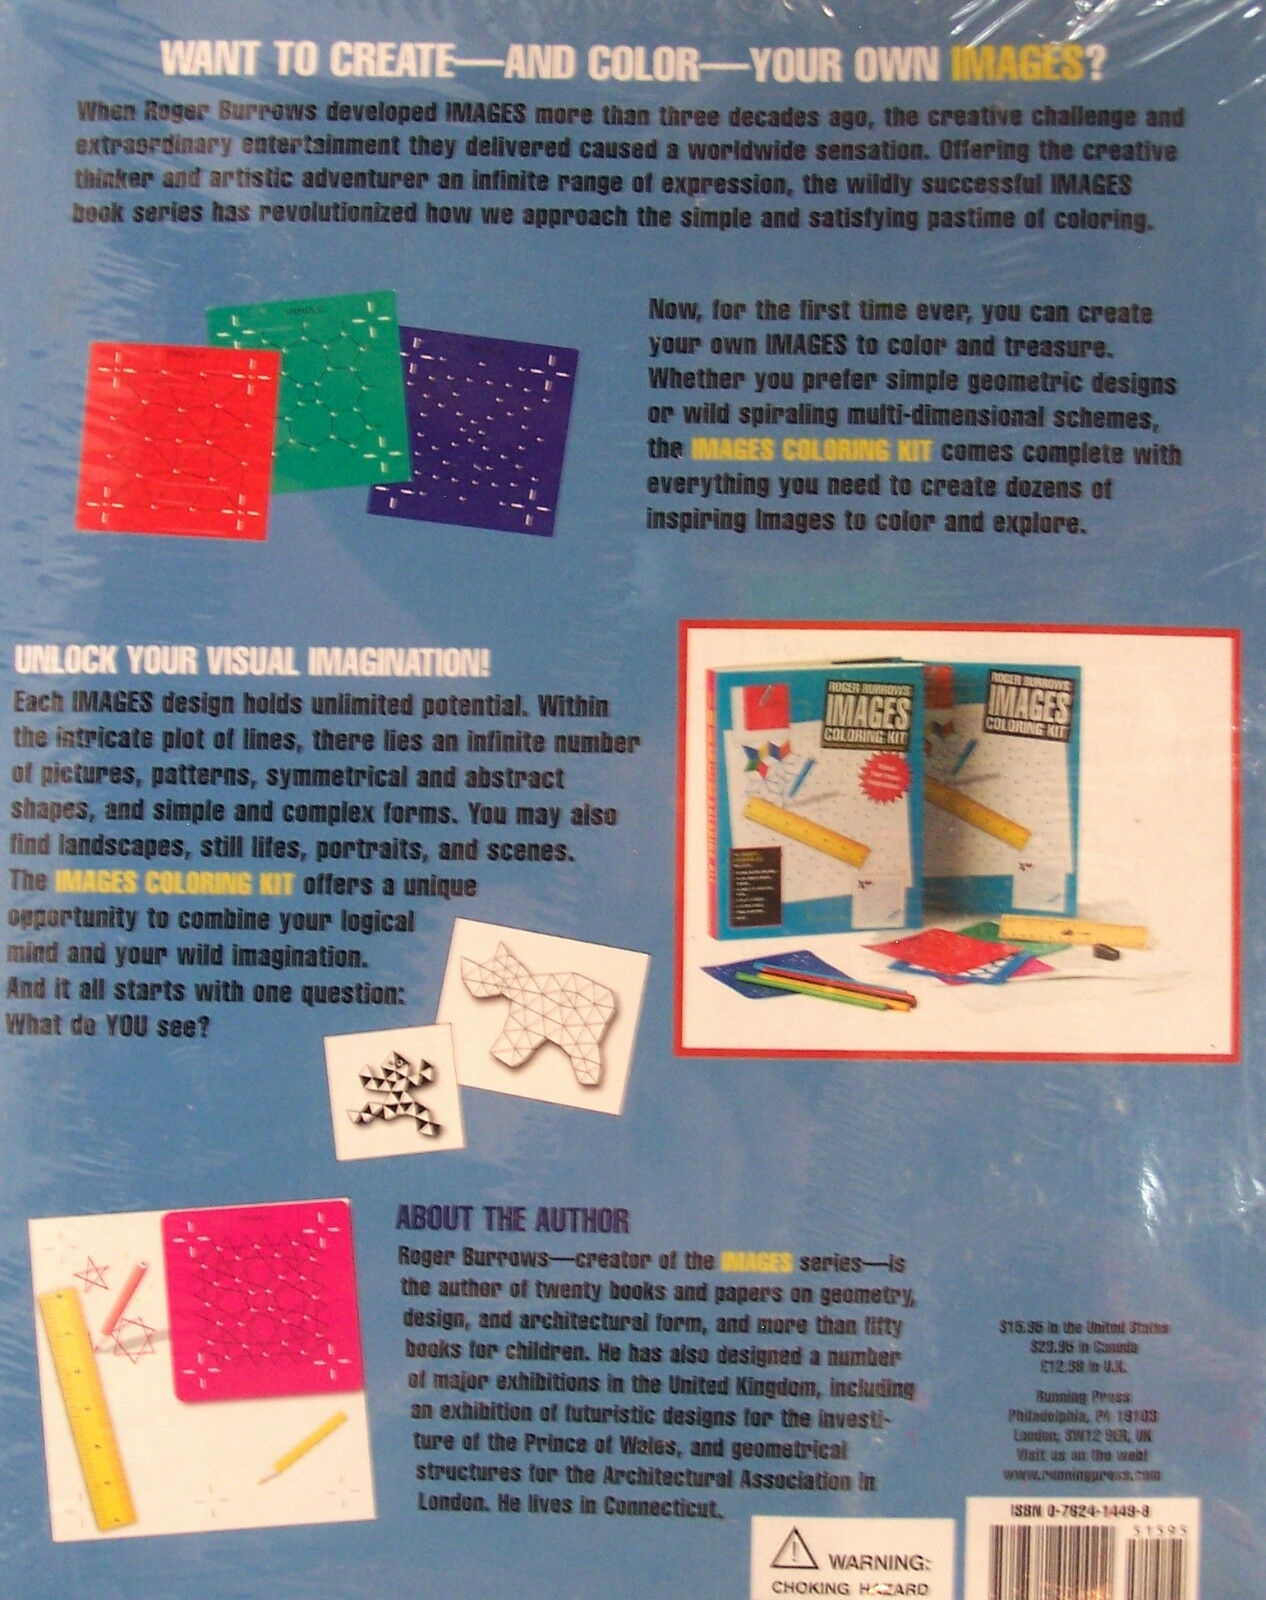 Roger Burrows Images Coloring Kit by Roger Burrows (2003, Paperback ...